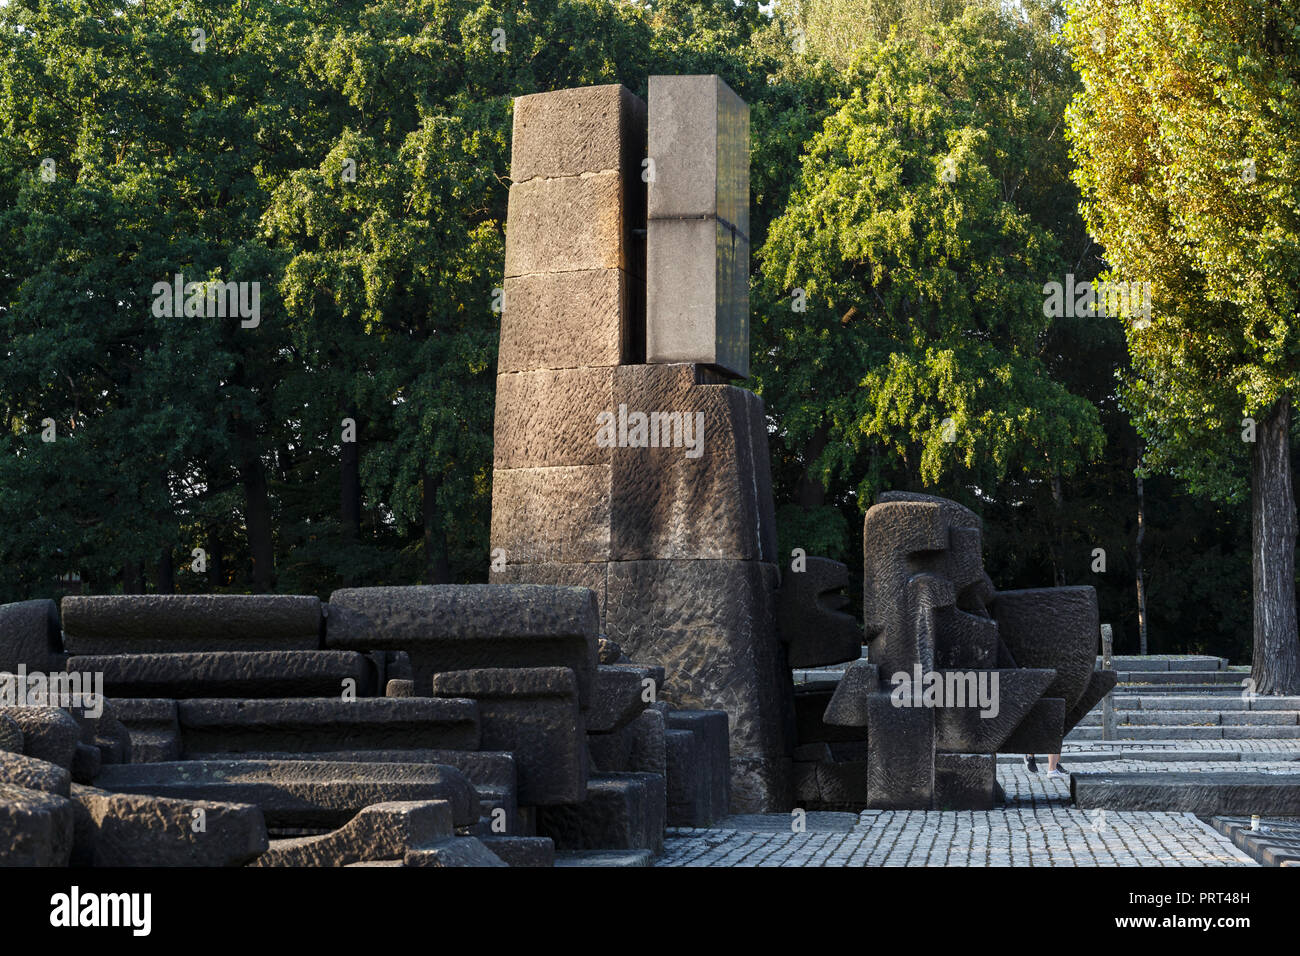 Oswiecim, Poland - August 22, 2018: Memorial and Museum Auschwitz-Birkenau, former German Nazi Concentration and Extermination Camp. - Stock Image